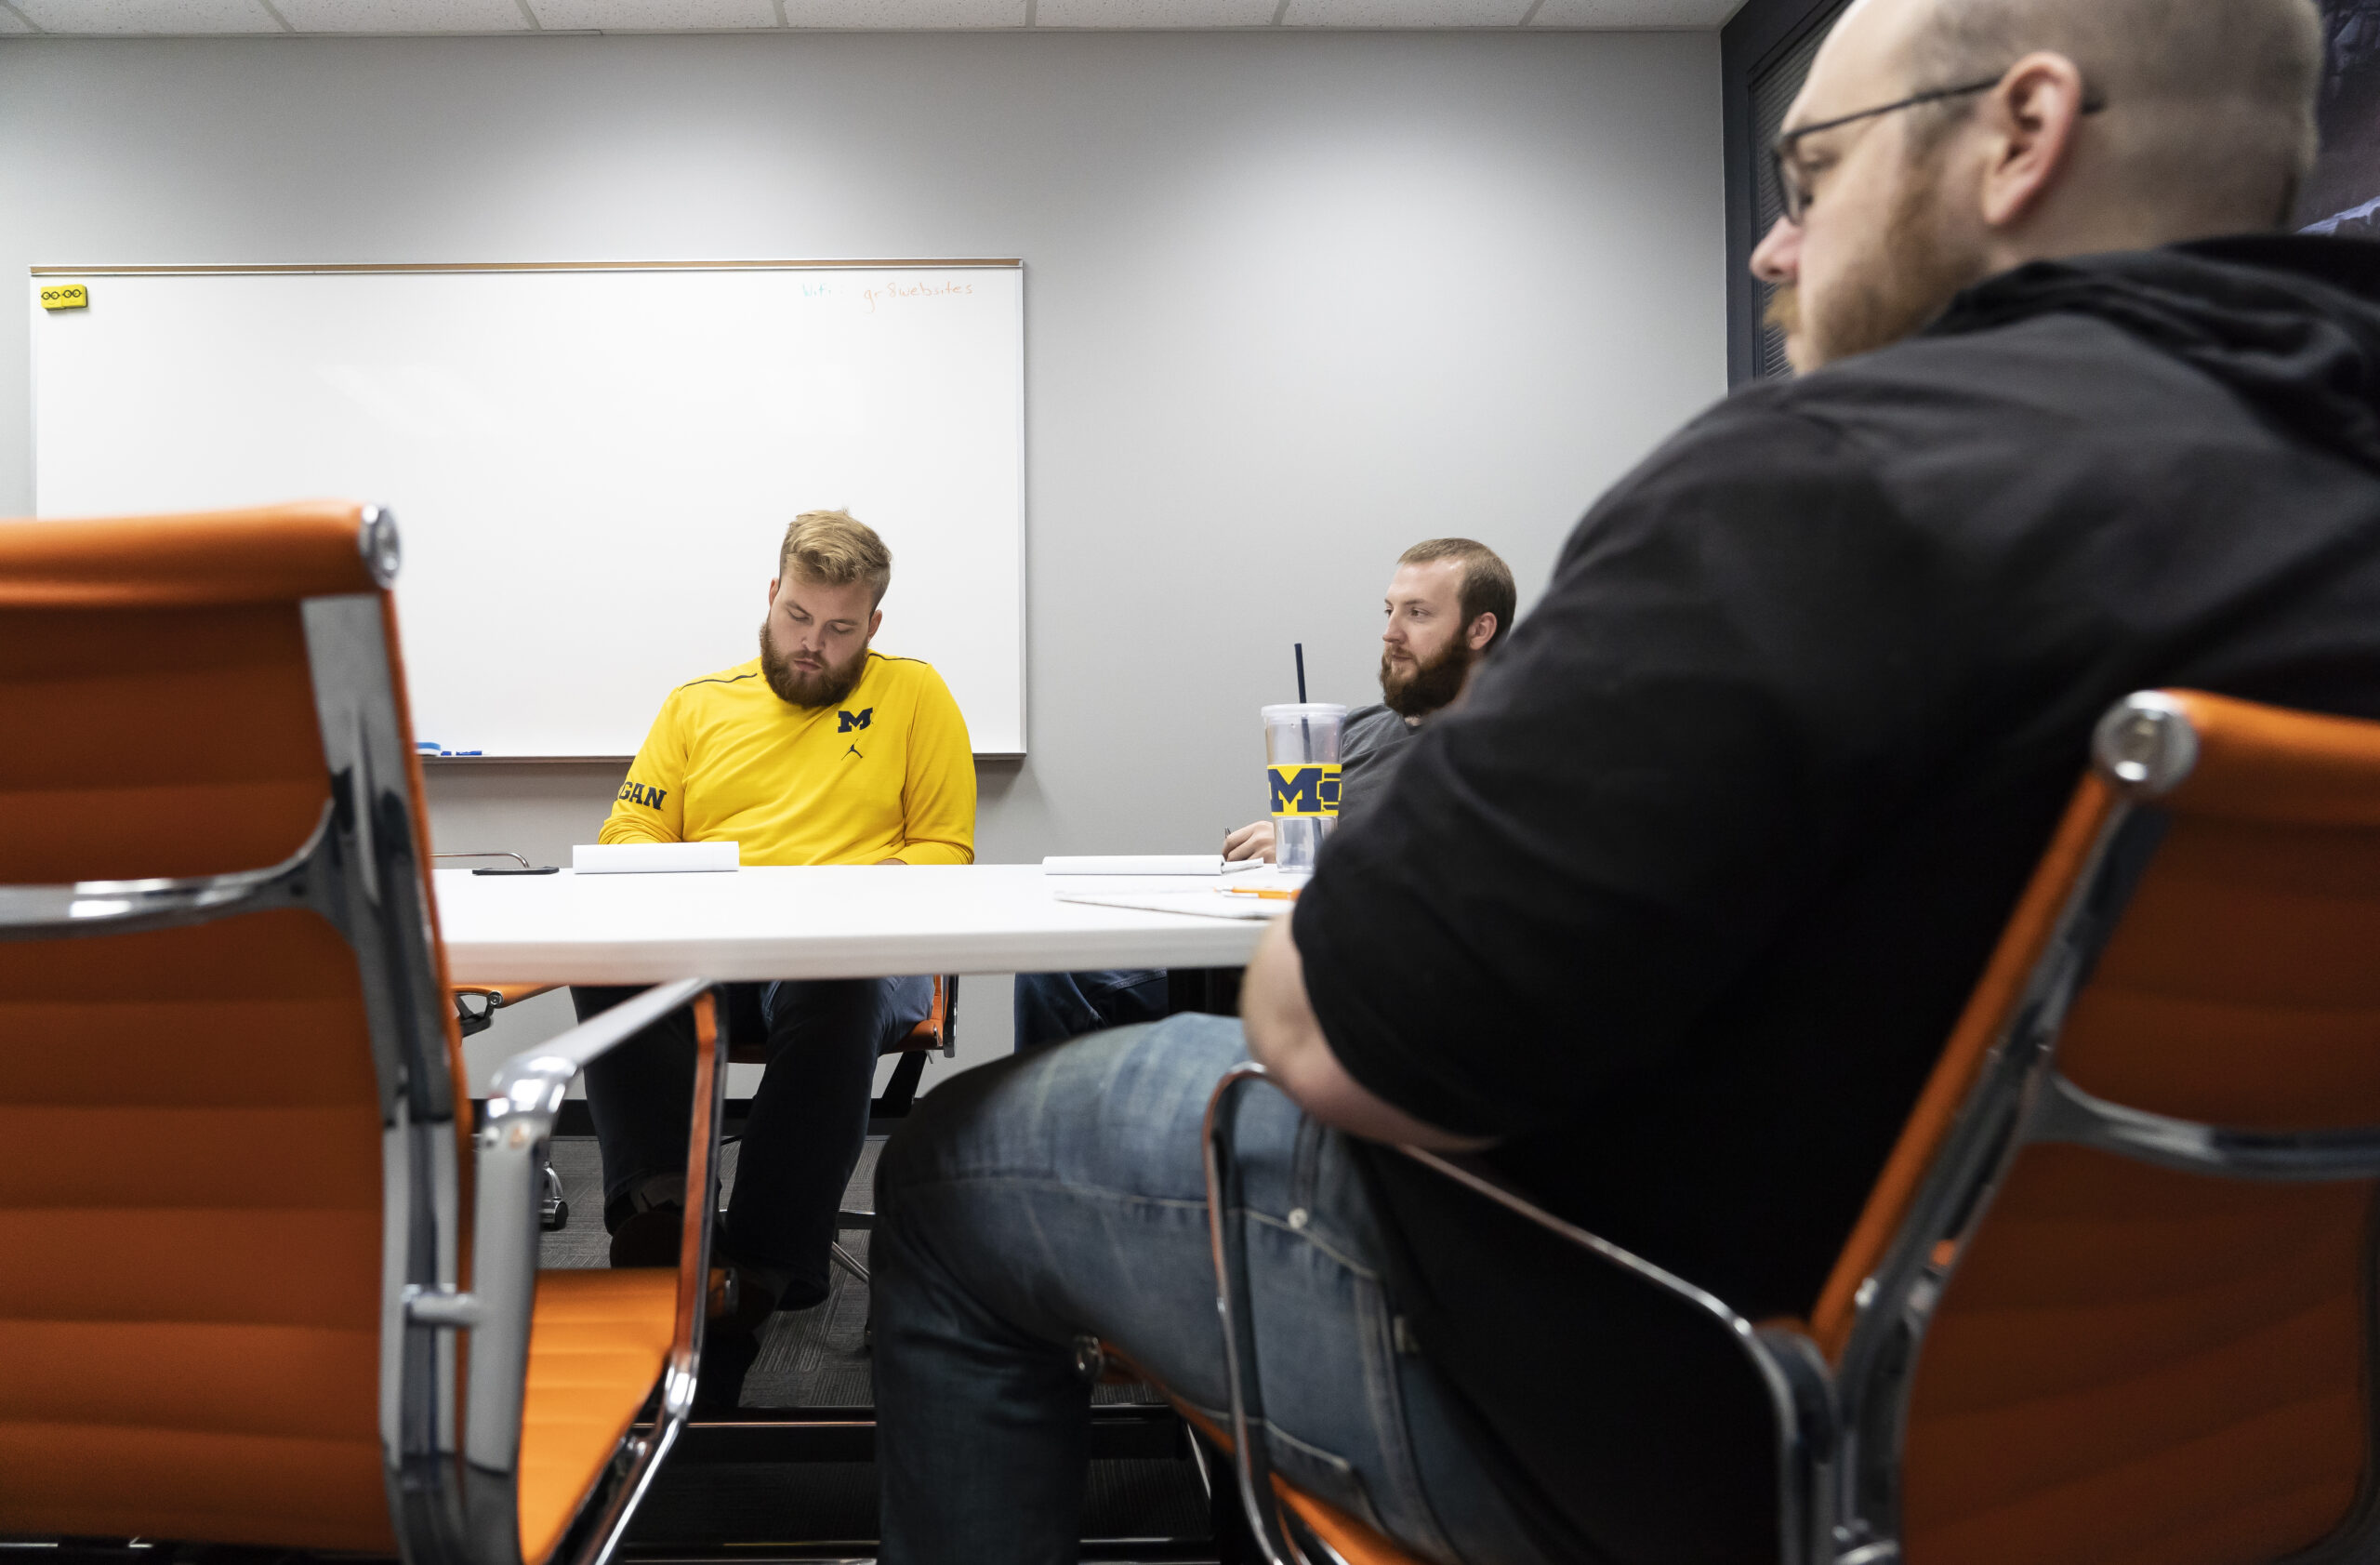 Chance, Sean, and Andy in the conference room